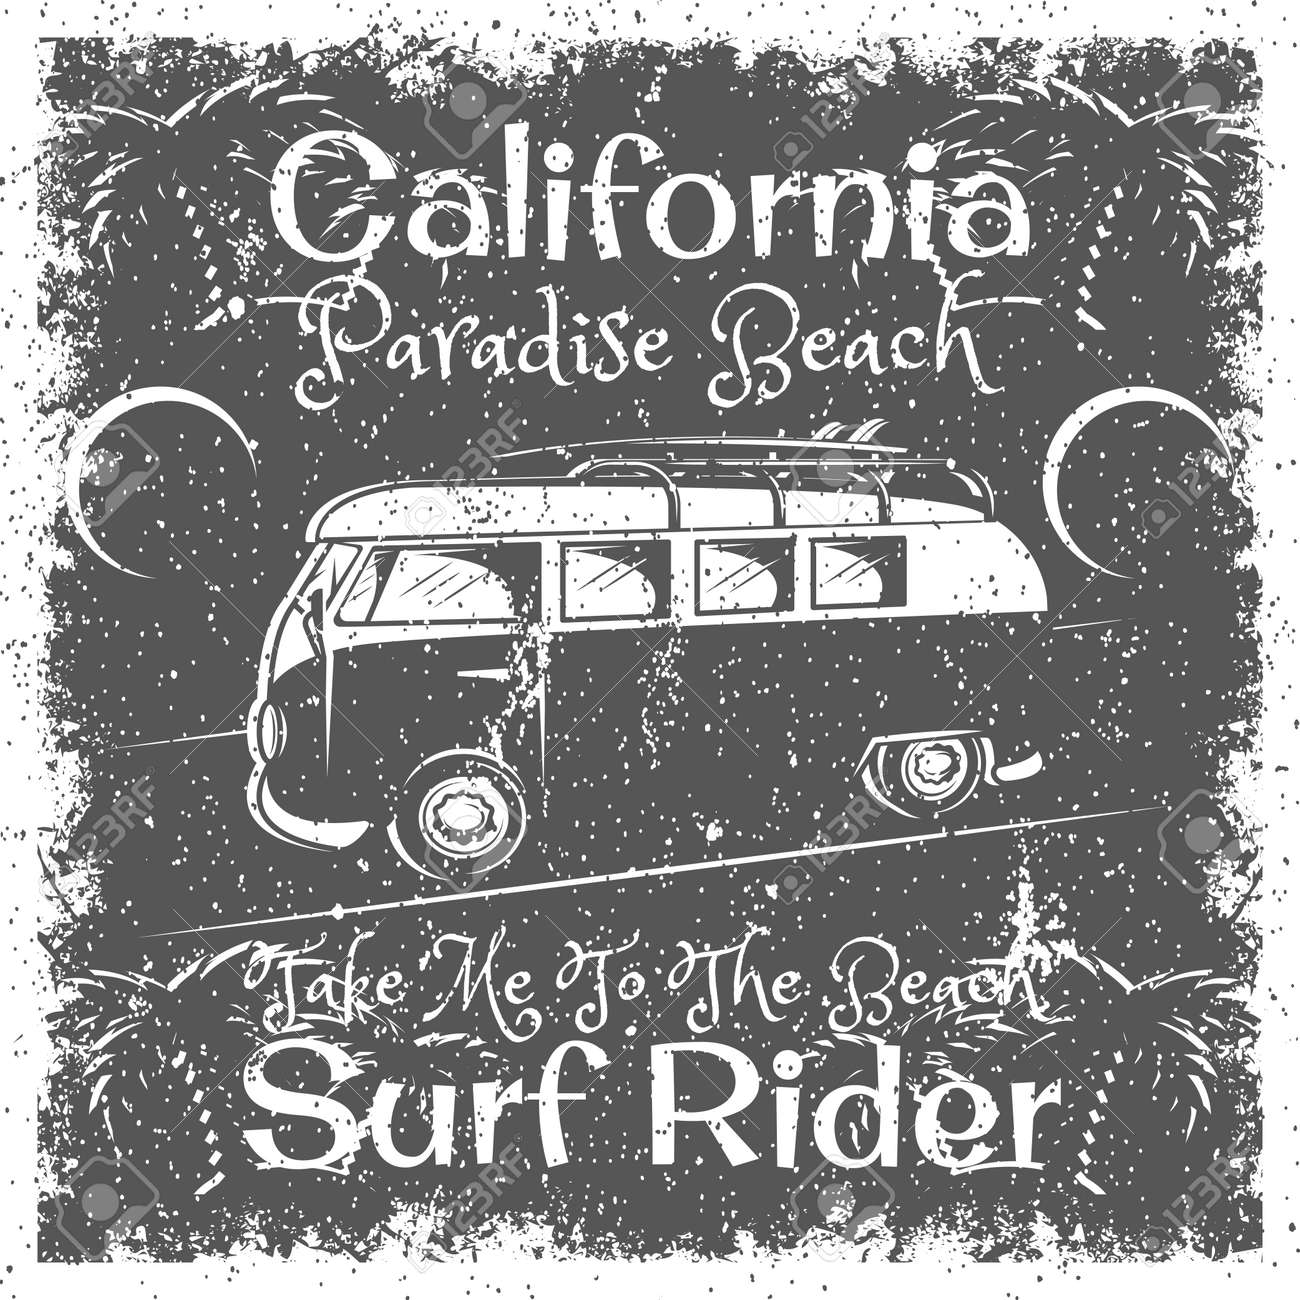 b116d540 Vector - Vintage California Beach poster. Surf Rider typography for print, t -shirt, tee design.